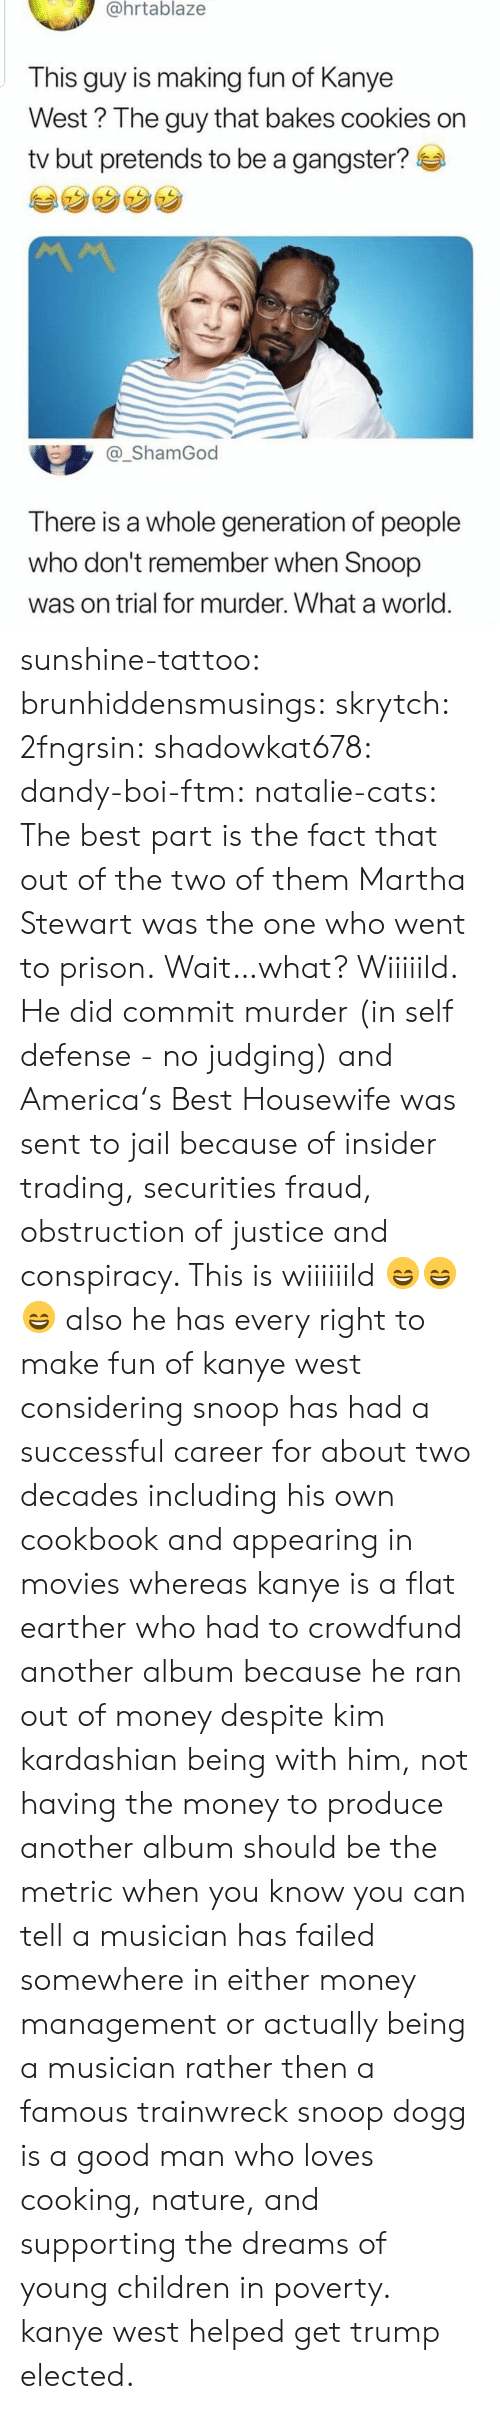 defense: @hrtablaze  This guy is making fun of Kanye  West? The guy that bakes cookies on  tv but pretends to be a gangster?  _ShamGod  There is a whole generation of people  who don't remember when Snoop  was on trial for murder. What a world sunshine-tattoo: brunhiddensmusings:  skrytch:  2fngrsin:  shadowkat678:  dandy-boi-ftm:   natalie-cats:   The best part is the fact that out of the two of them Martha Stewart was the one who went to prison.   Wait…what?   Wiiiiild. He did commit murder (in self defense - no judging) and America's Best Housewife was sent to jail because of insider trading, securities fraud, obstruction of justice and conspiracy. This is wiiiiiild 😄😄😄    also he has every right to make fun of kanye west considering snoop has had a successful career for about two decades including his own cookbook and appearing in movies whereas kanye is a flat earther who had to crowdfund another album because he ran out of money despite kim kardashian being with him, not having the money to produce another album should be the metric when you know you can tell a musician has failed somewhere in either money management or actually being a musician rather then a famous trainwreck   snoop dogg is a good man who loves cooking, nature, and supporting the dreams of young children in poverty. kanye west helped get trump elected.